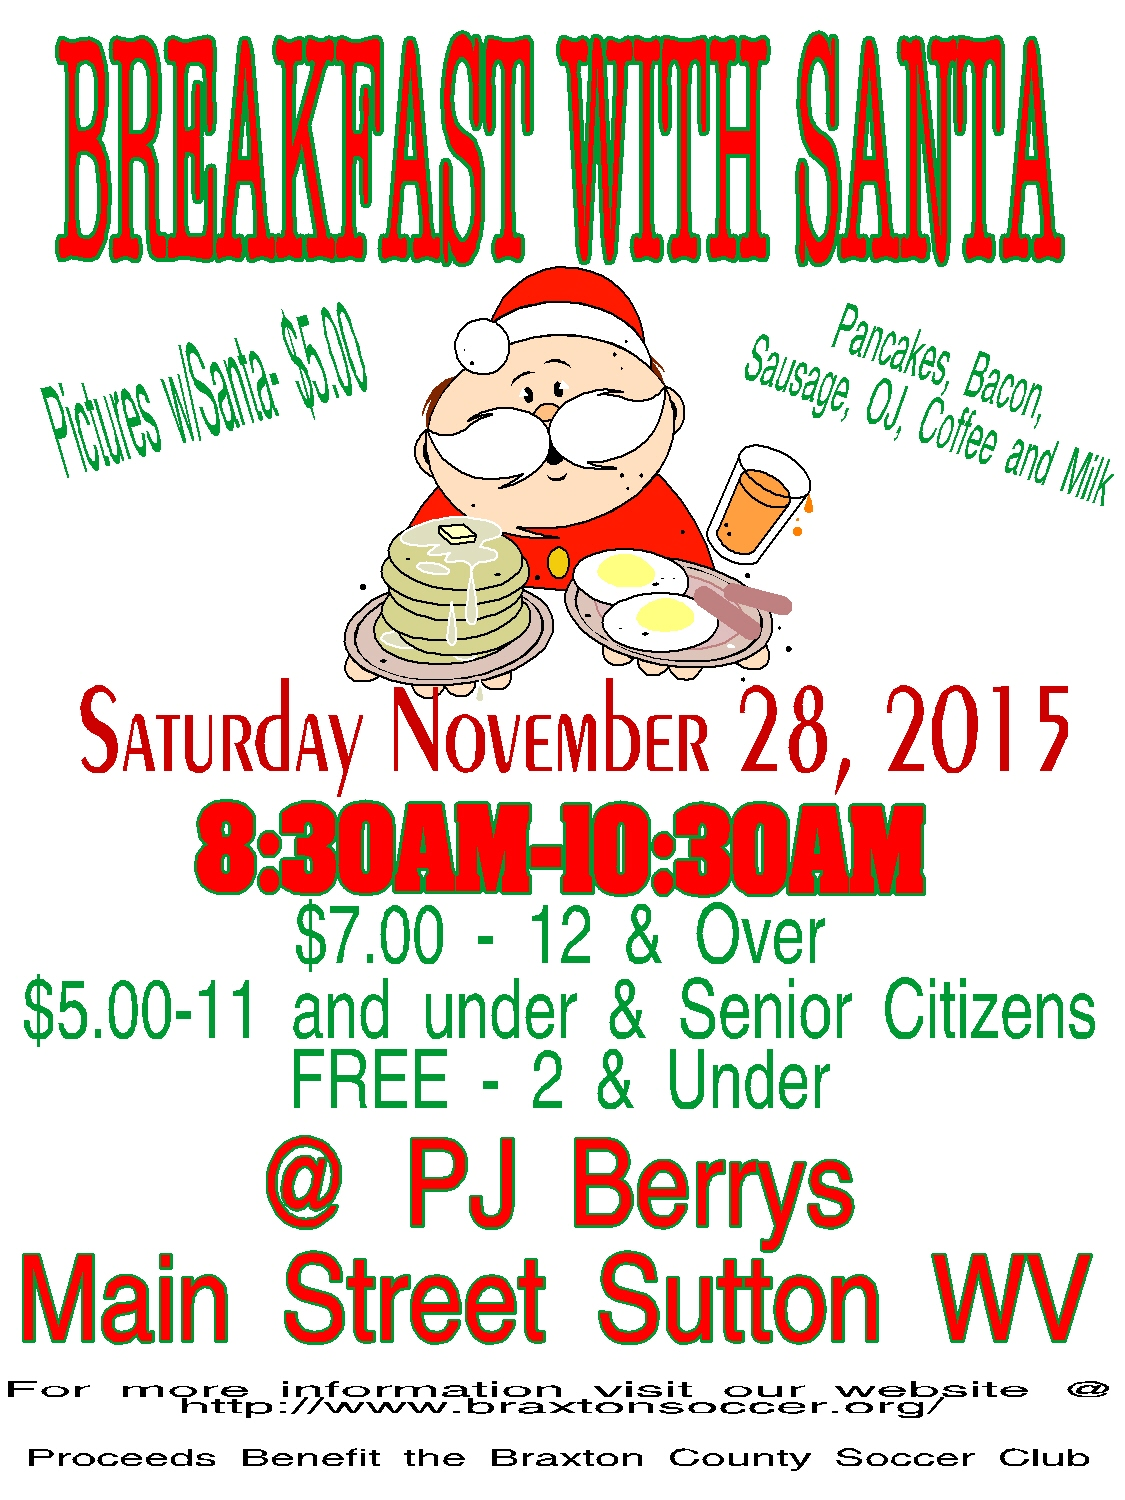 Gassaway Wv Christmas Parade 2020 Small Business Saturday, Christmas Parade & Events   Town of Sutton